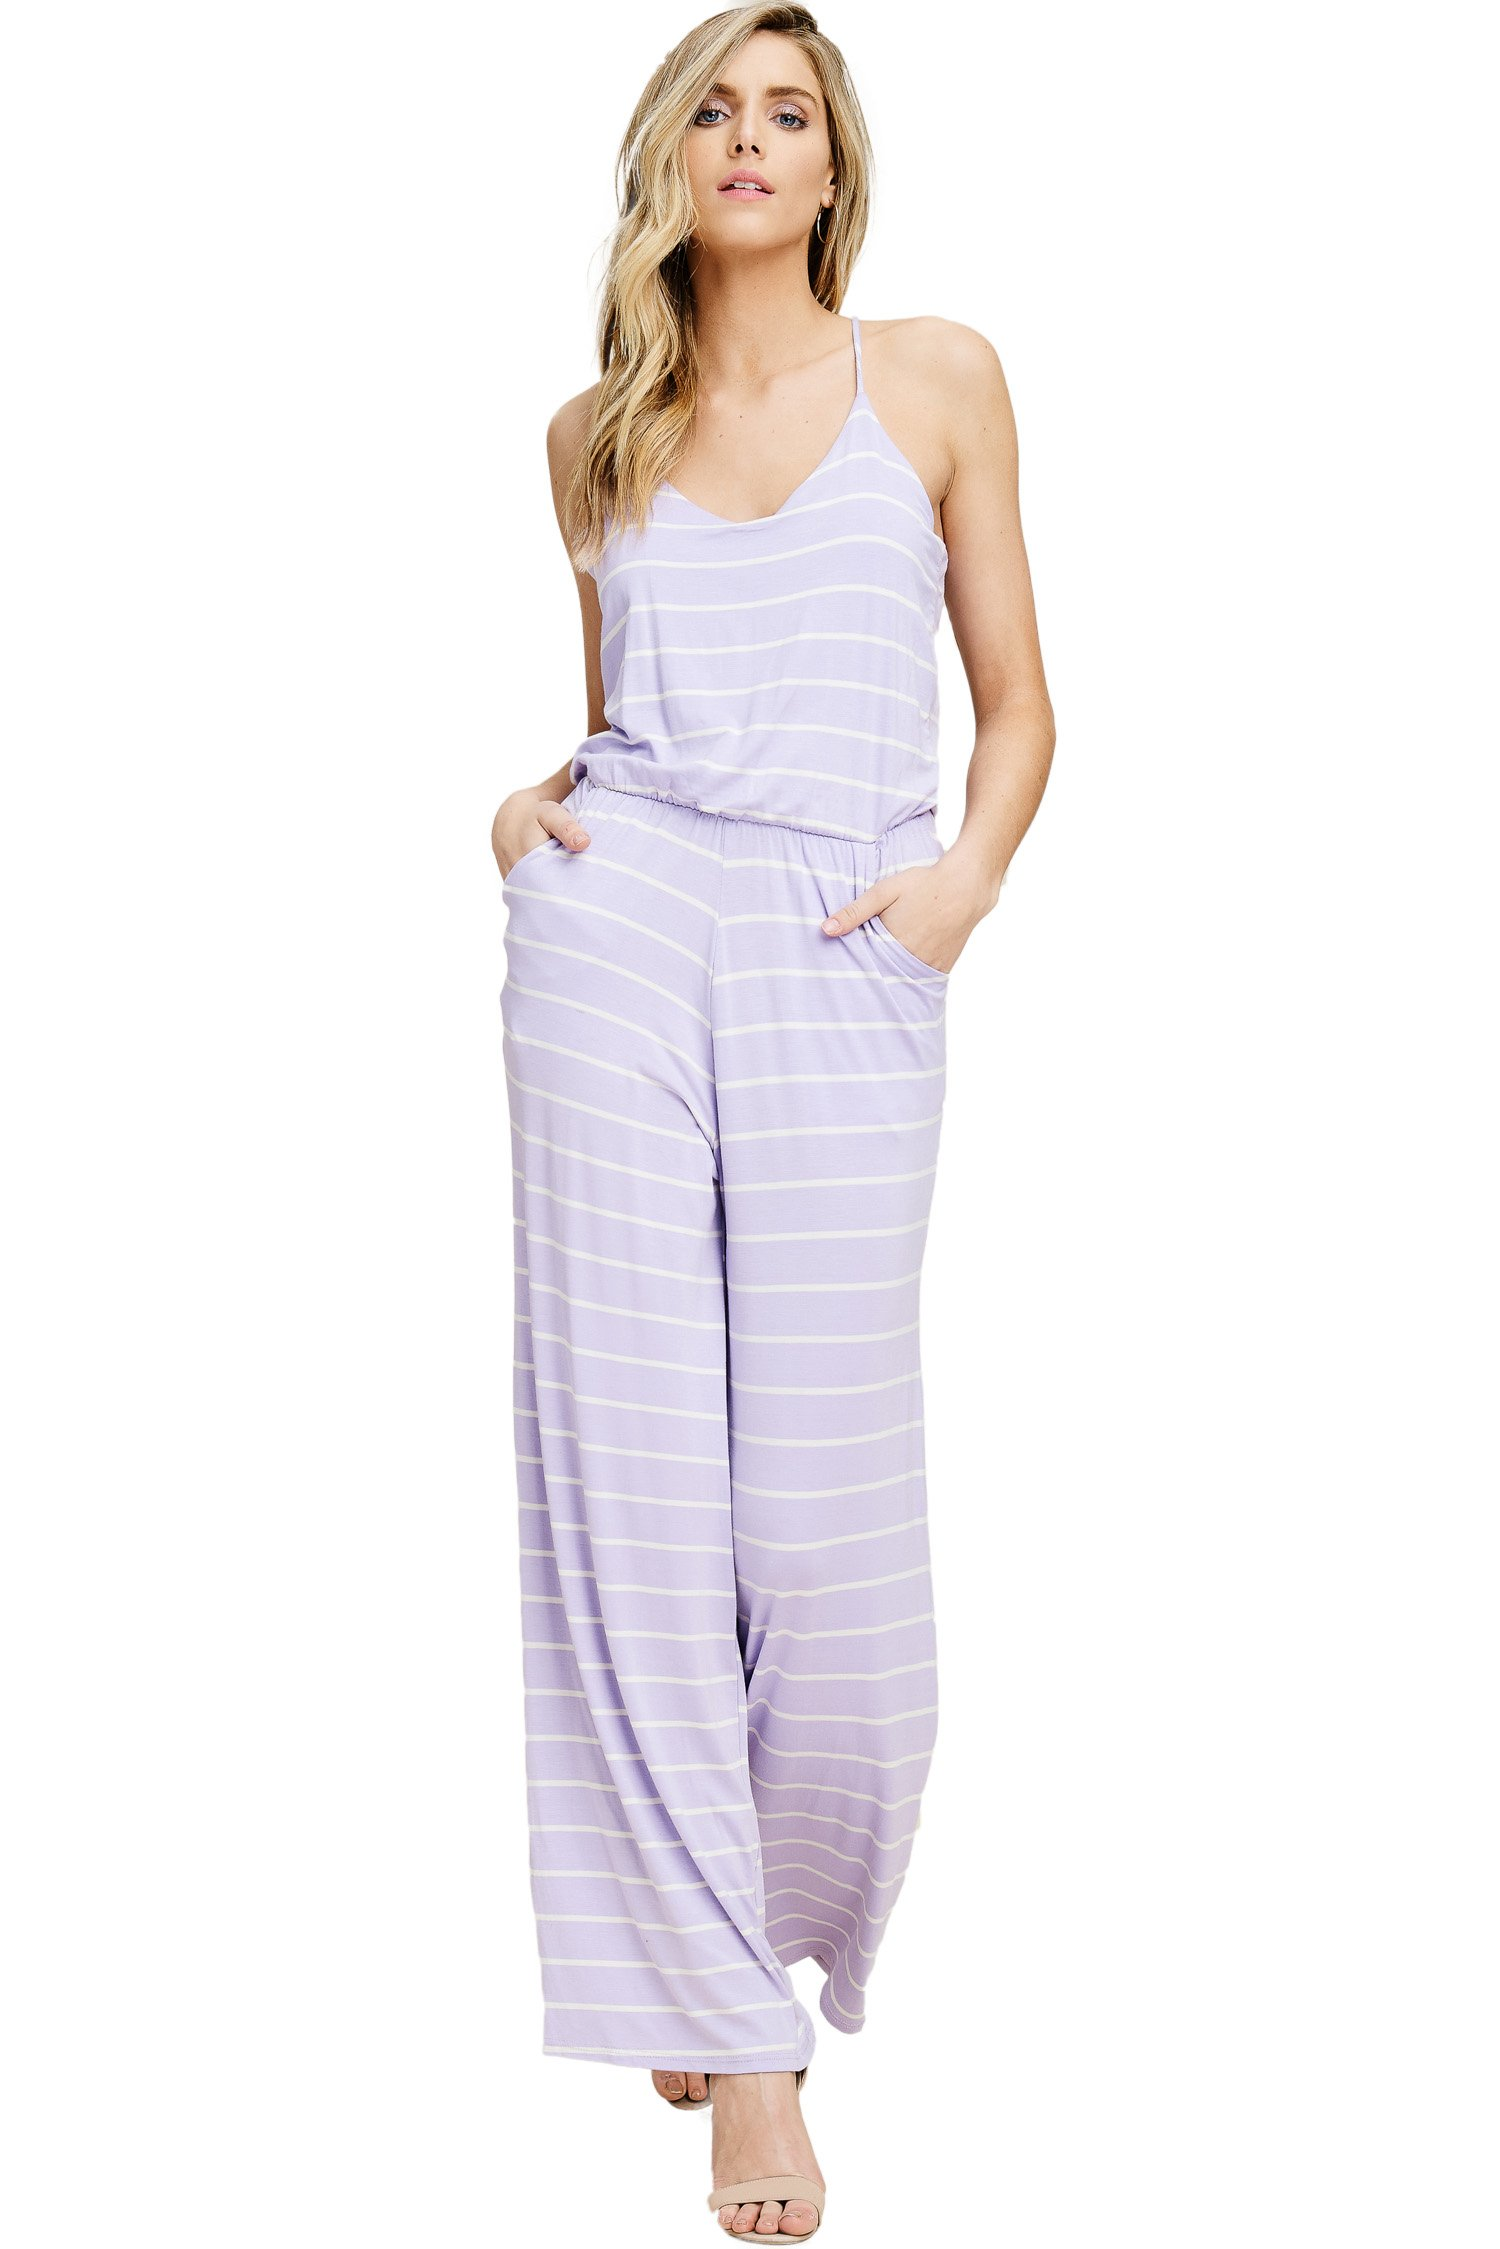 Annabelle Women's V-Neckline Sleeveless Tank Top Striped Print Flared Leg Elastic Waist Jumpsuit with Side Slant Pockets Lilac-Ivory Small J8078